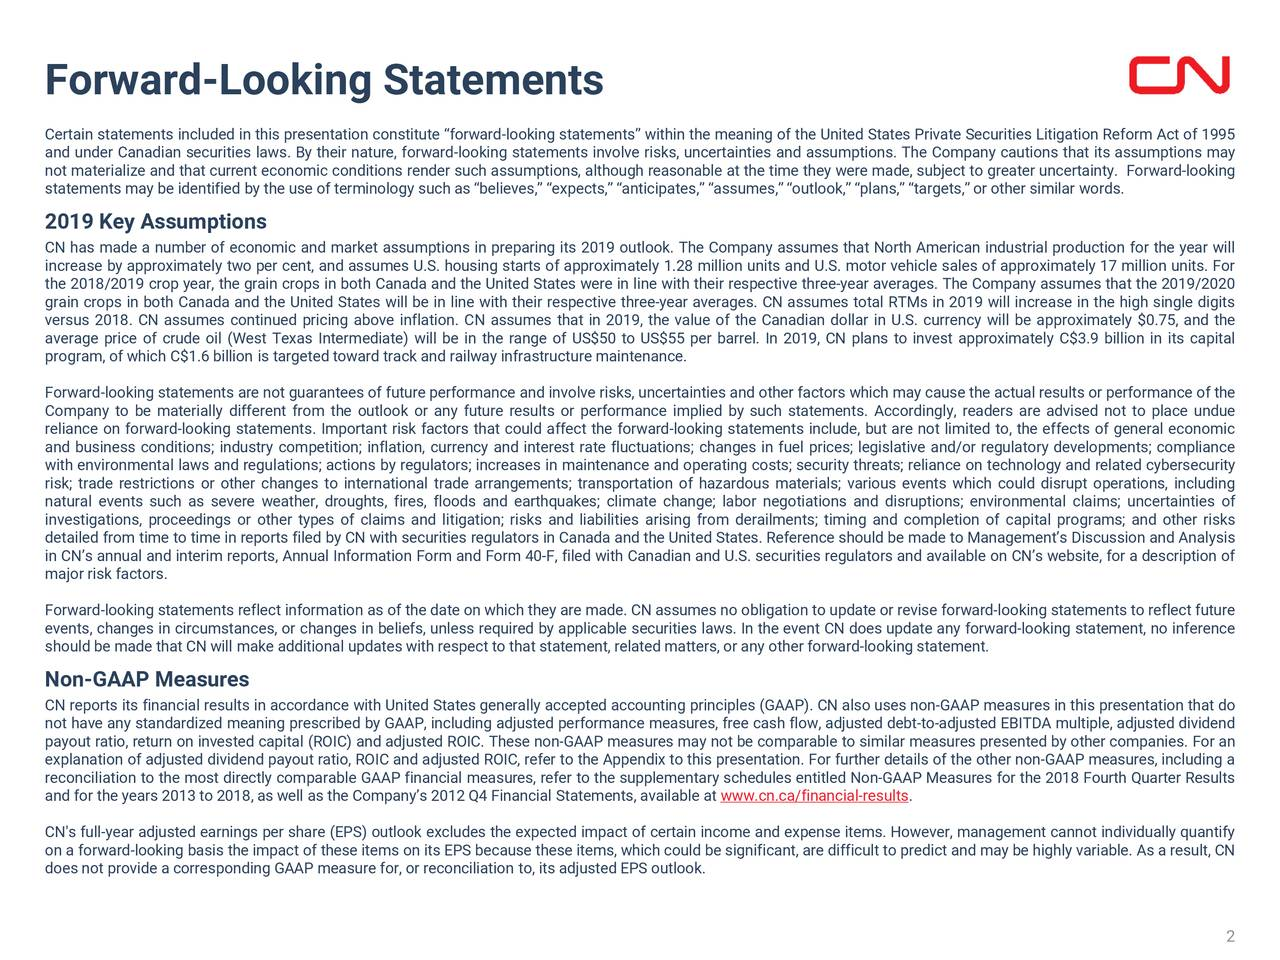 """Certain statements included in this presentation constitute """"forward-looking statements"""" within the meaning of the United States Private Securities Litigation Reform Act of 1995 and under Canadian securities laws. By their nature, forward-looking statements involve risks, uncertainties and assumptions. The Company cautions that its assumptions may not materialize and that current economic conditions render such assumptions, although reasonable at the time they were made, subject to greater uncertainty. Forward-looking statements may be identified by the use of terminology such as """"believes,"""" """"expects,"""" """"anticipates,"""" """"assumes,"""" """"outlook,"""" """"plans,"""" """"targets,"""" or other similar words. 2019 Key Assumptions CN has made a number of economic and market assumptions in preparing its 2019 outlook. The Company assumes that North American industrial production for the year will increase by approximately two per cent, and assumes U.S. housing starts of approximately 1.28 million units and U.S. motor vehicle sales of approximately 17 million units. For the 2018/2019 crop year, the grain crops in both Canada and the United States were in line with their respective three-year averages. The Company assumes that the 2019/2020 grain crops in both Canada and the United States will be in line with their respective three-year averages. CN assumes total RTMs in 2019 will increase in the high single digits versus 2018. CN assumes continued pricing above inflation. CN assumes that in 2019, the value of the Canadian dollar in U.S. currency will be approximately $0.75, and the average price of crude oil (West Texas Intermediate) will be in the range of US$50 to US$55 per barrel. In 2019, CN plans to invest approximately C$3.9 billion in its capital program, of which C$1.6 billion is targeted toward track and railway infrastructure maintenance. Forward-looking statements are not guarantees of future performance and involve risks, uncertainties and other factors which may cause the actual resul"""